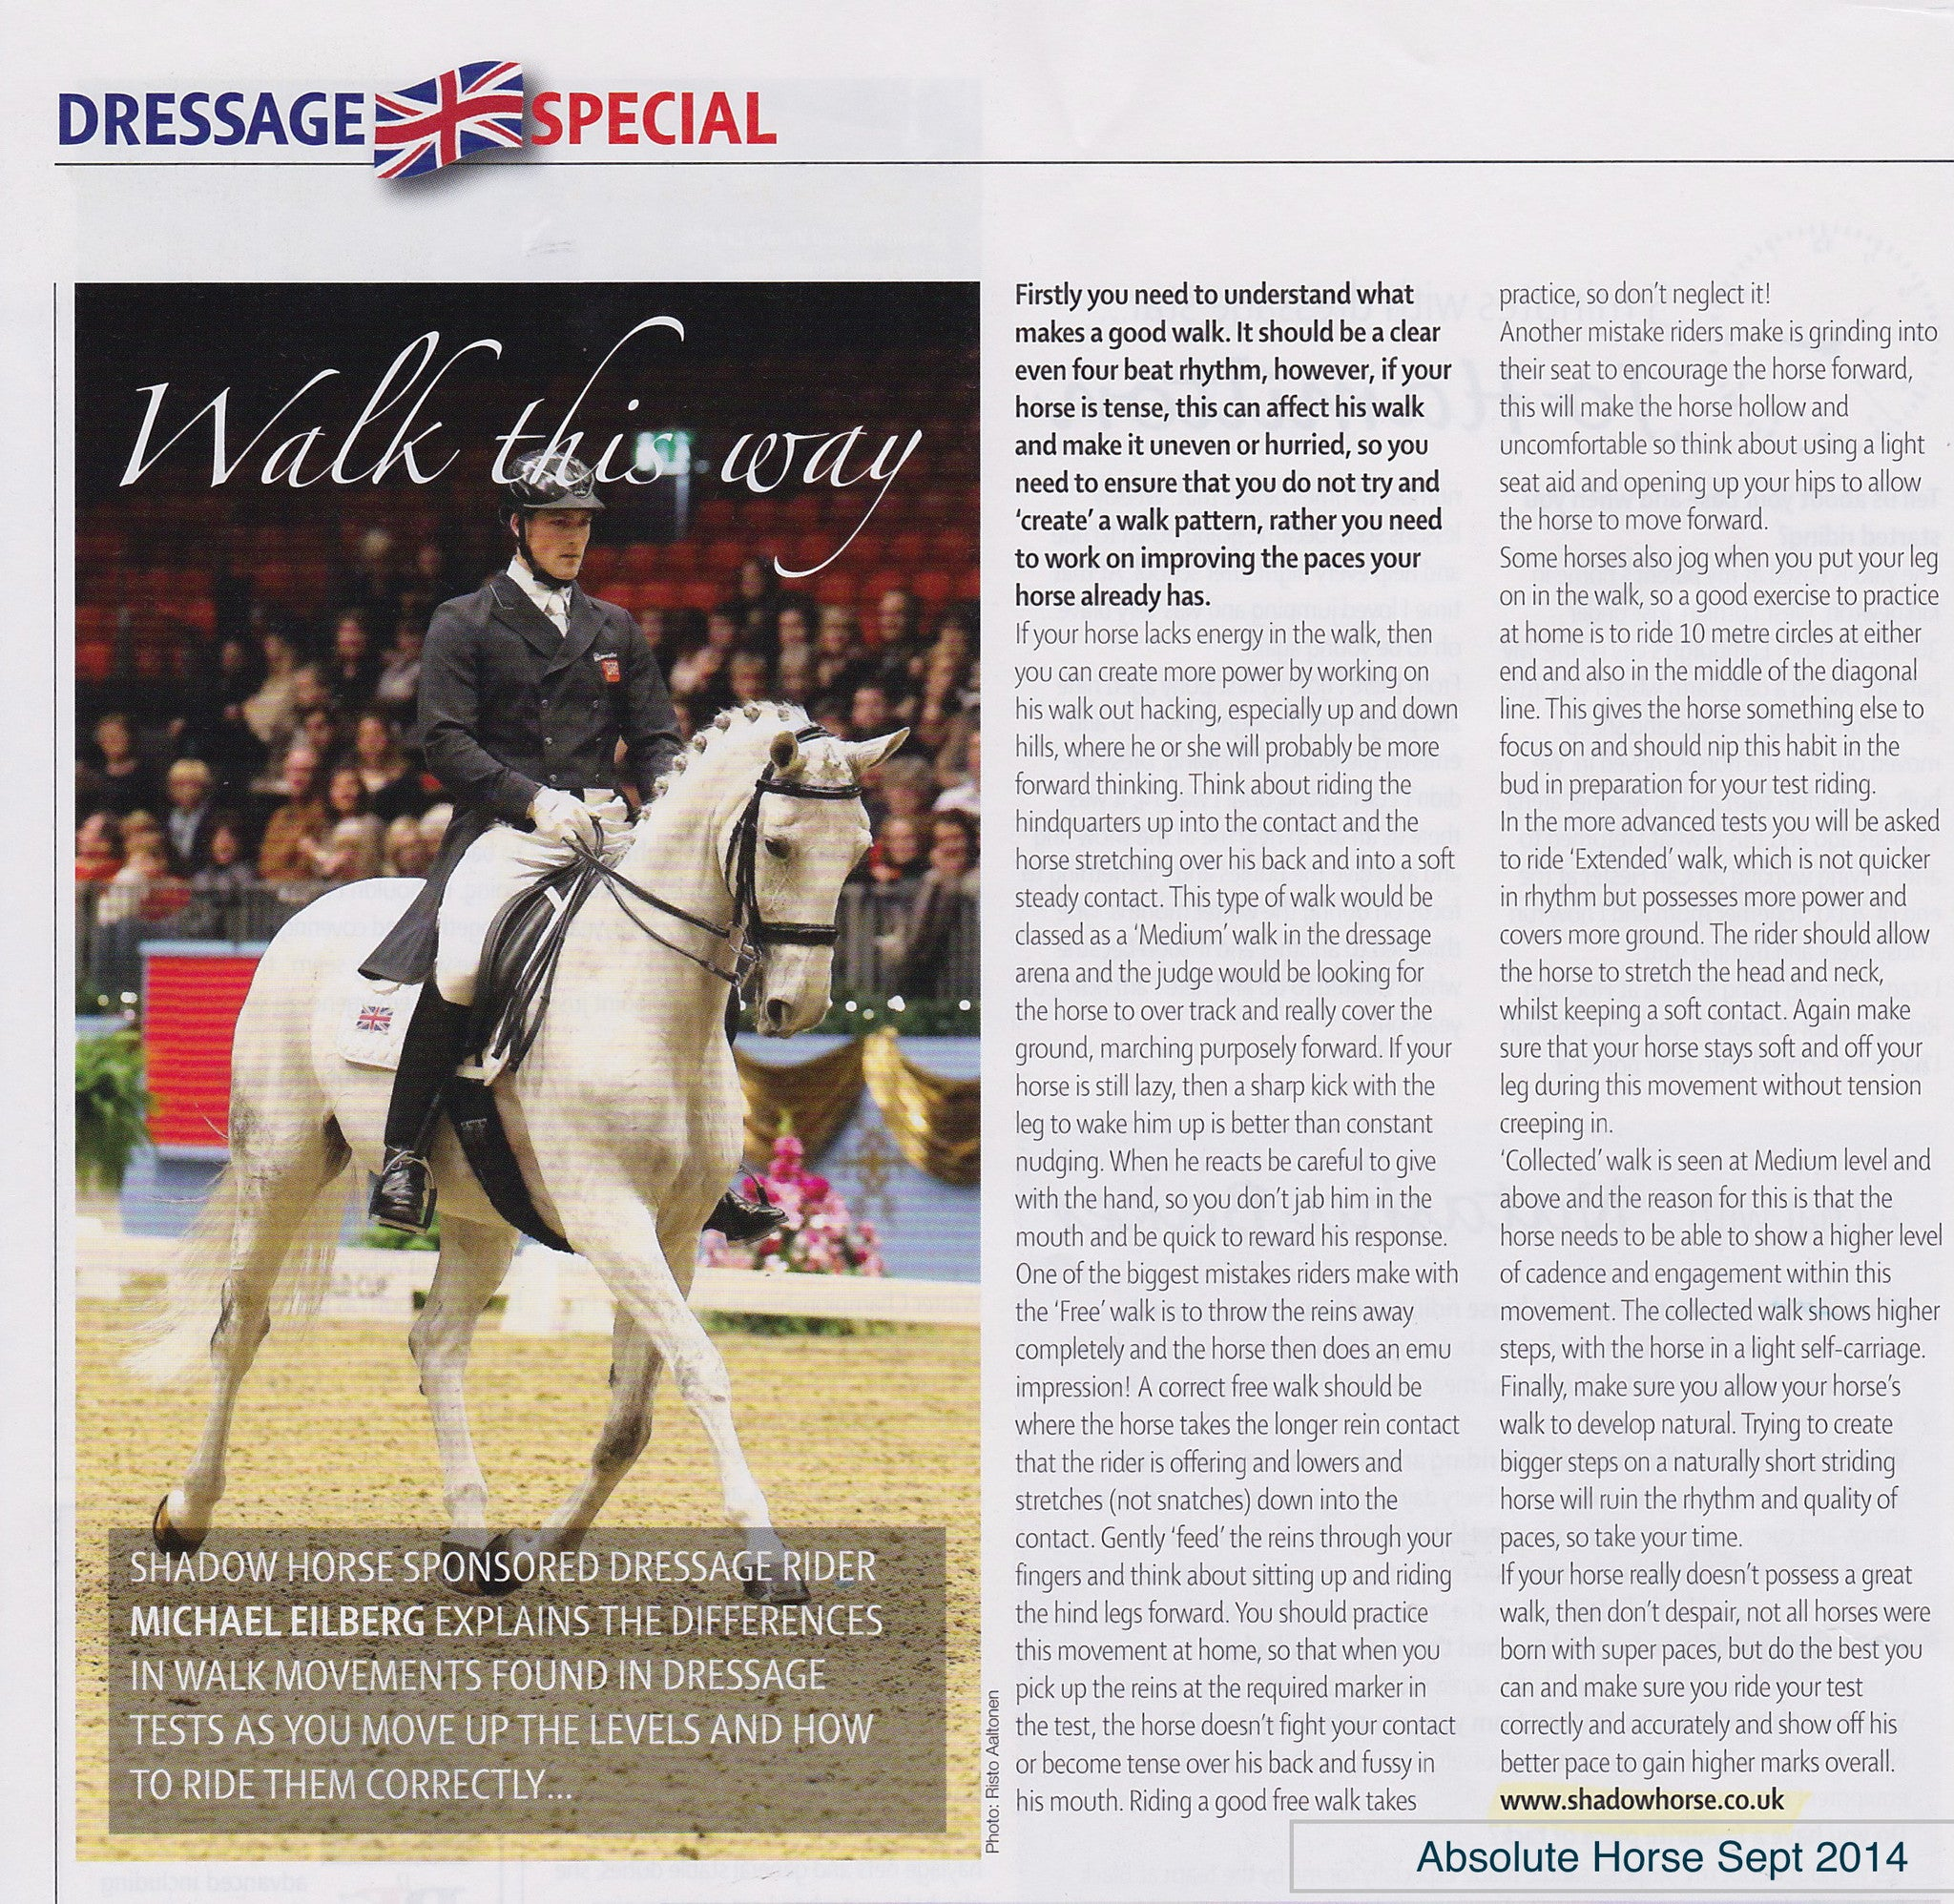 Michael Eilberg explains the different types of walk in Dressage tests